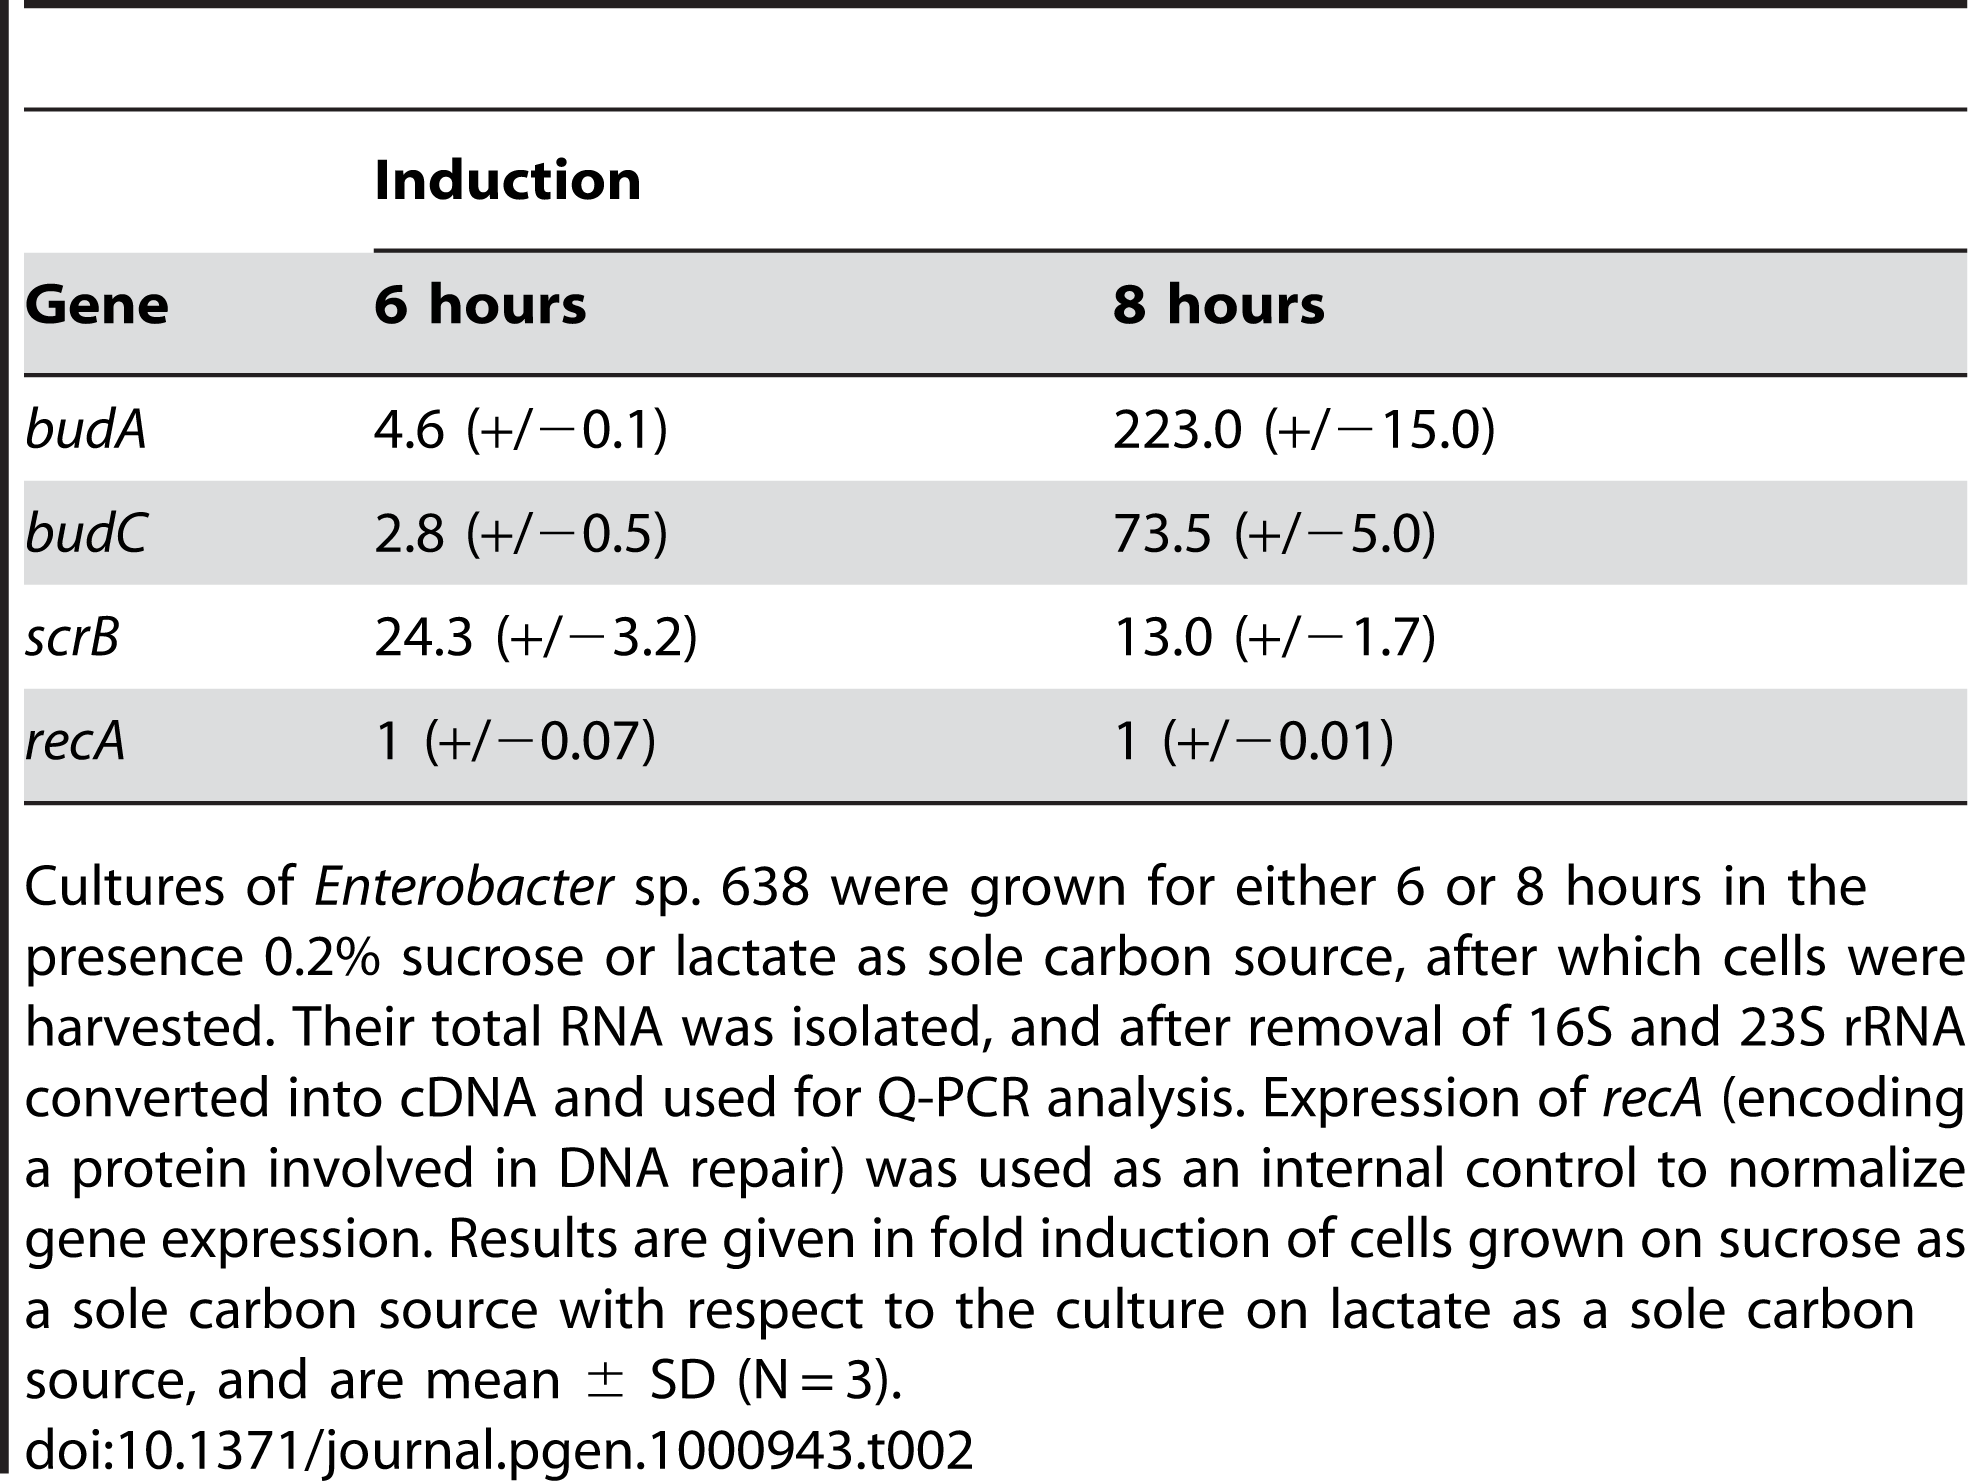 Transcription analysis of genes involved in sucrose metabolism, acetoin, and 2,3-butanediol synthesis in <i>Enterobacter</i> sp. 638 when grown in the presence of sucrose or lactate as carbon source.